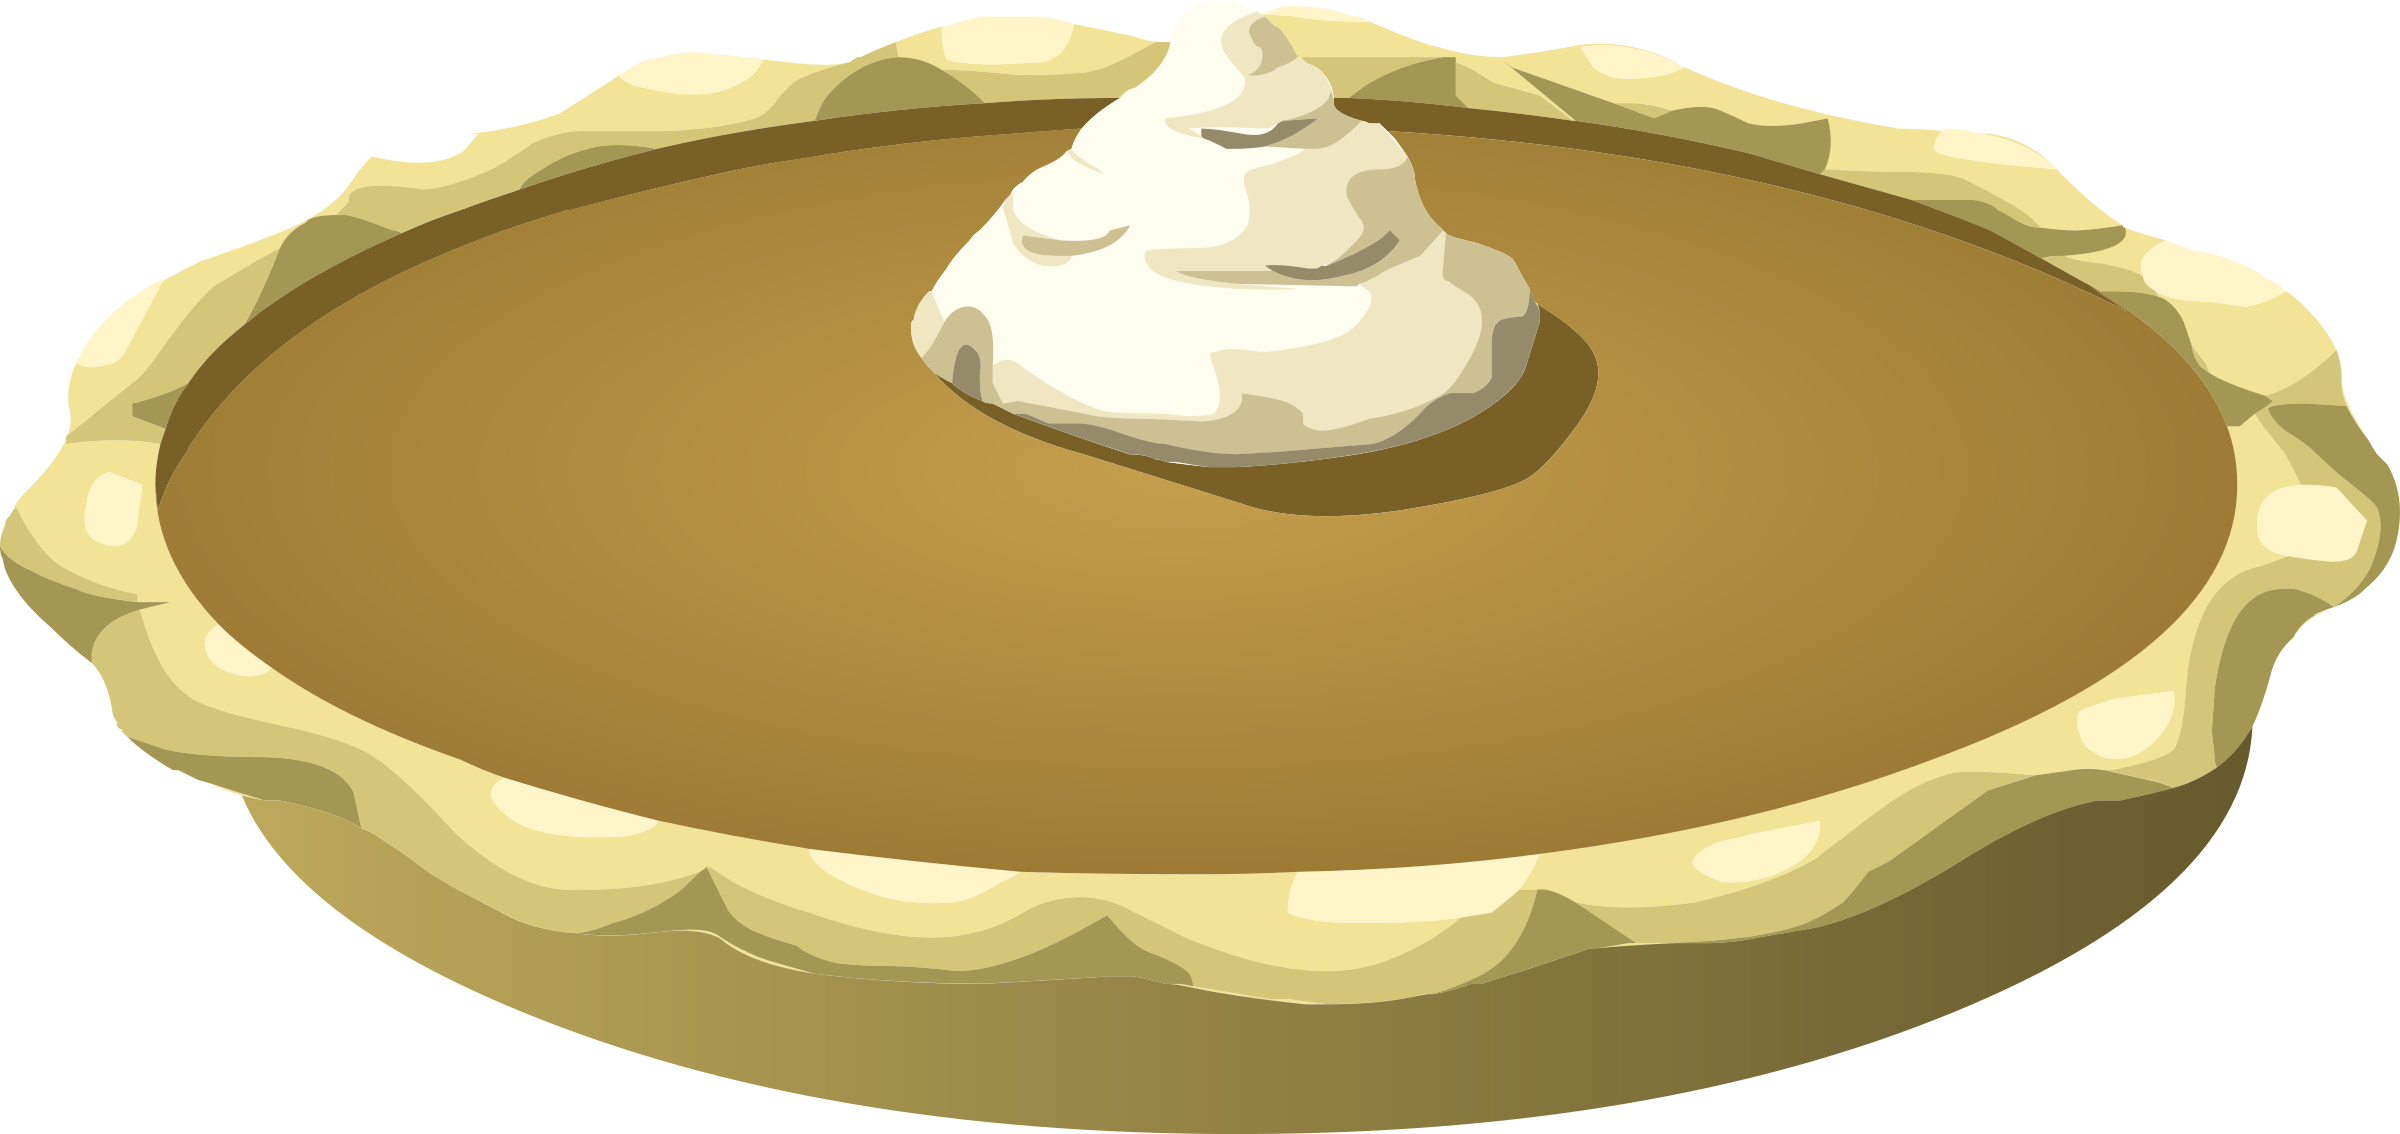 Pumpkin pie png. Food icons free and